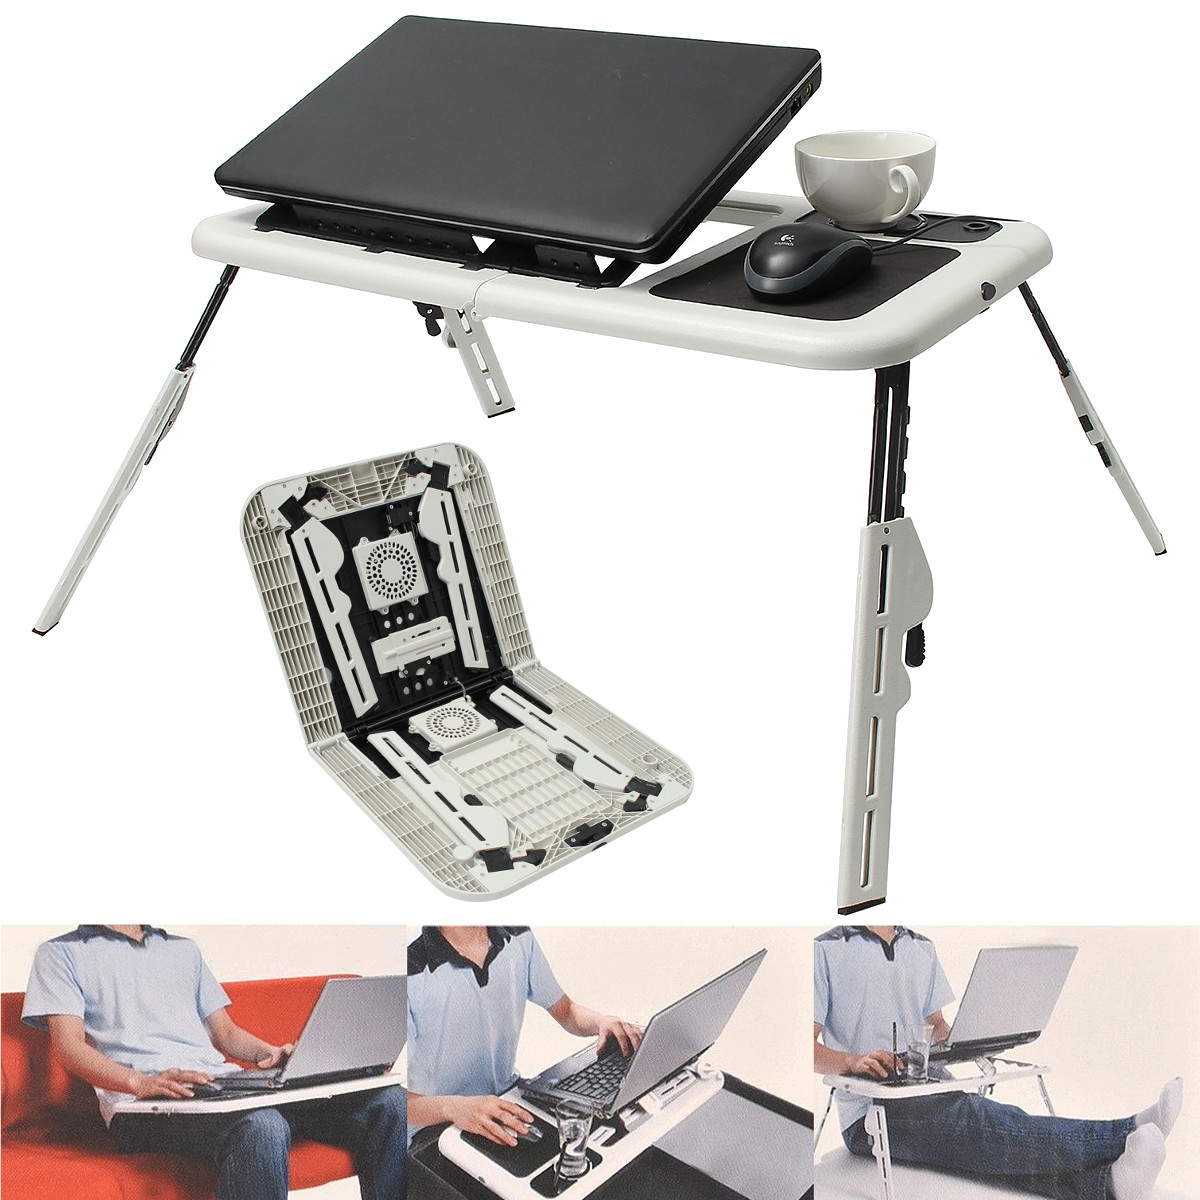 Laptop Lap Desk Foldable Table e-Table Bed with USB Cooling Fans Stand TV Tray by